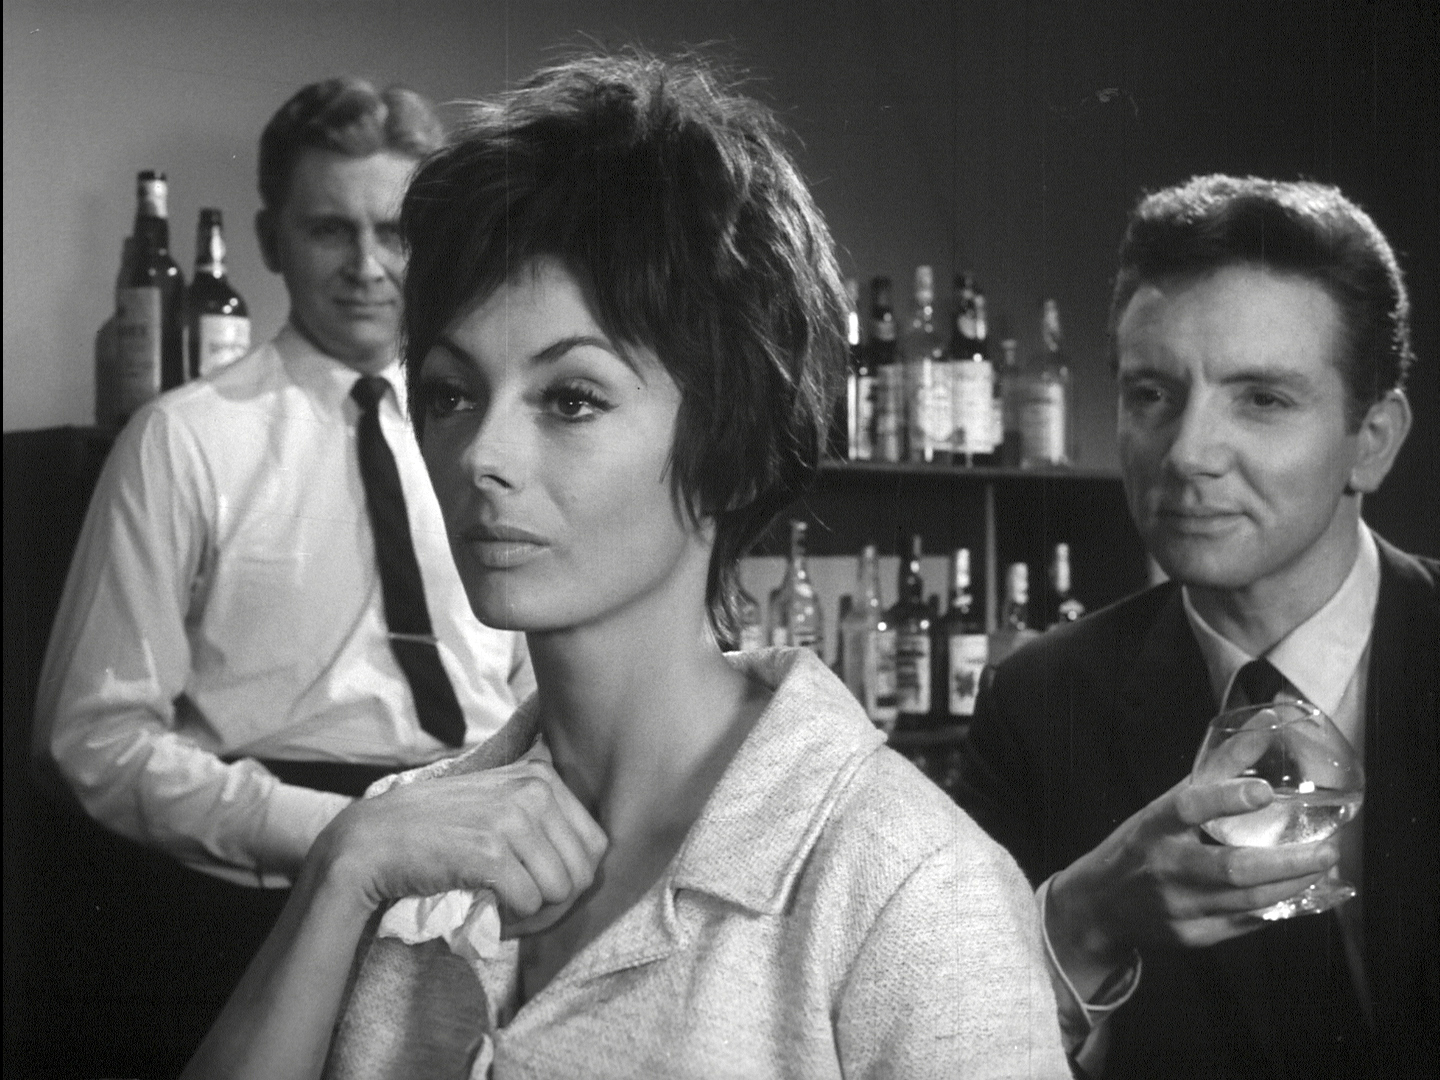 Still from Joe Sarno's 1963 film SIN YOU SINNERS.